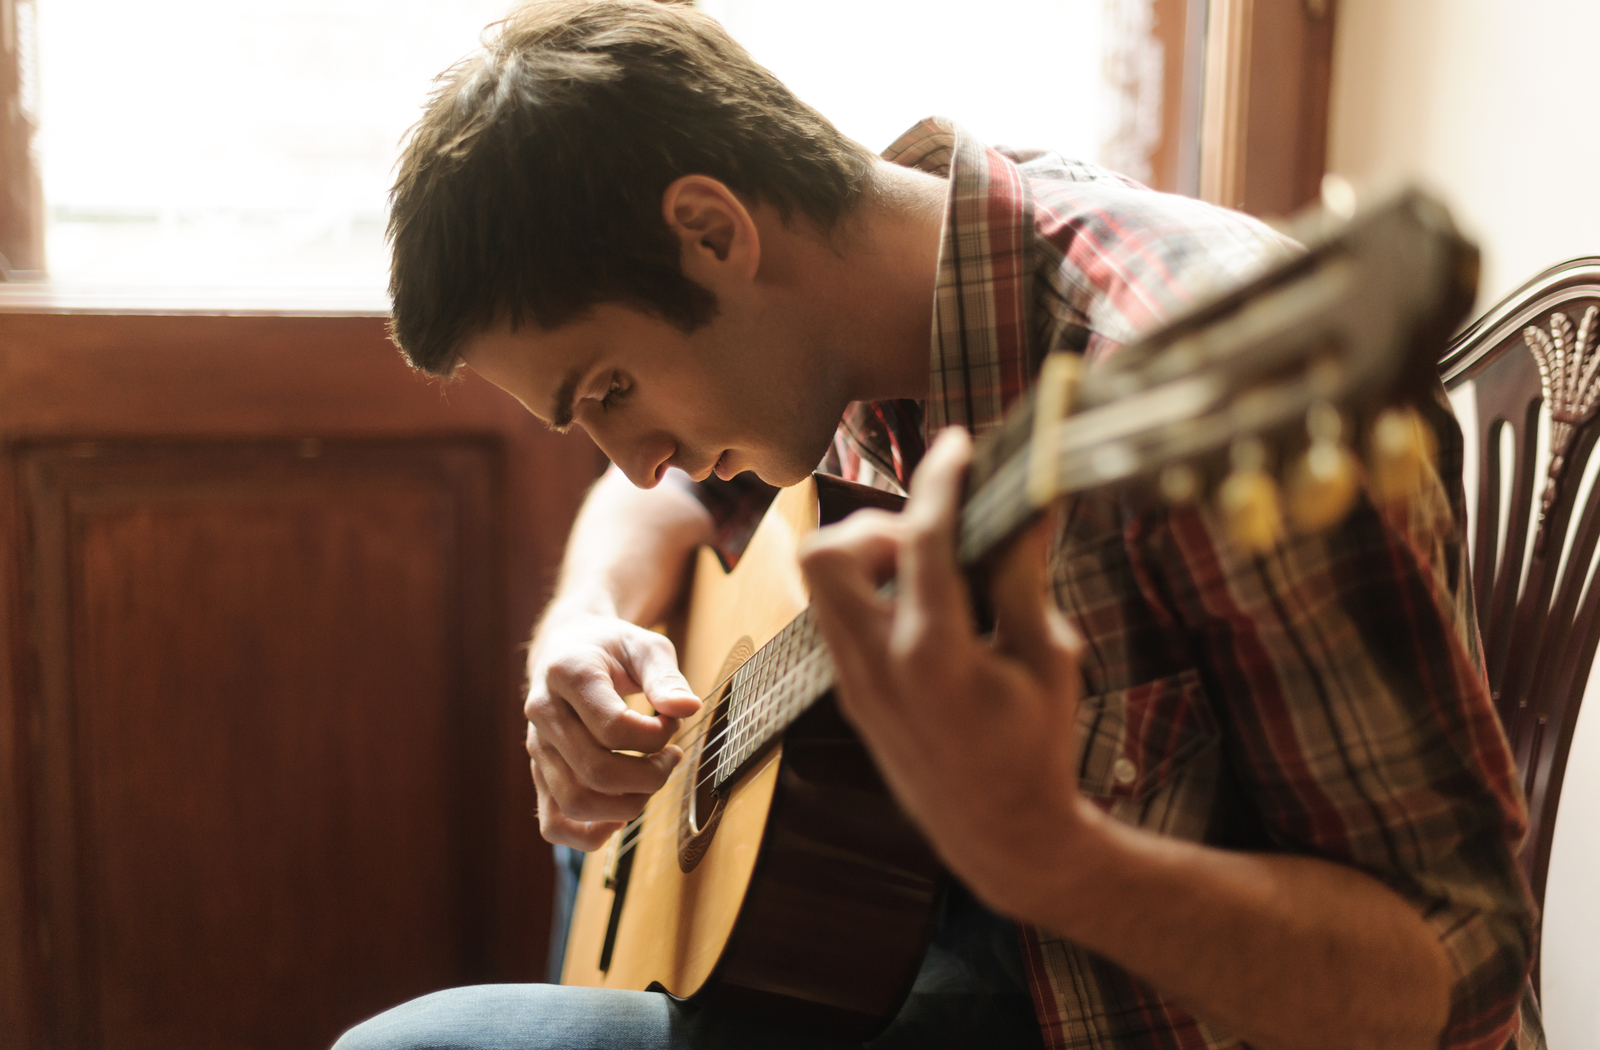 Man playing a guitar, a new hobby to help him stay sober